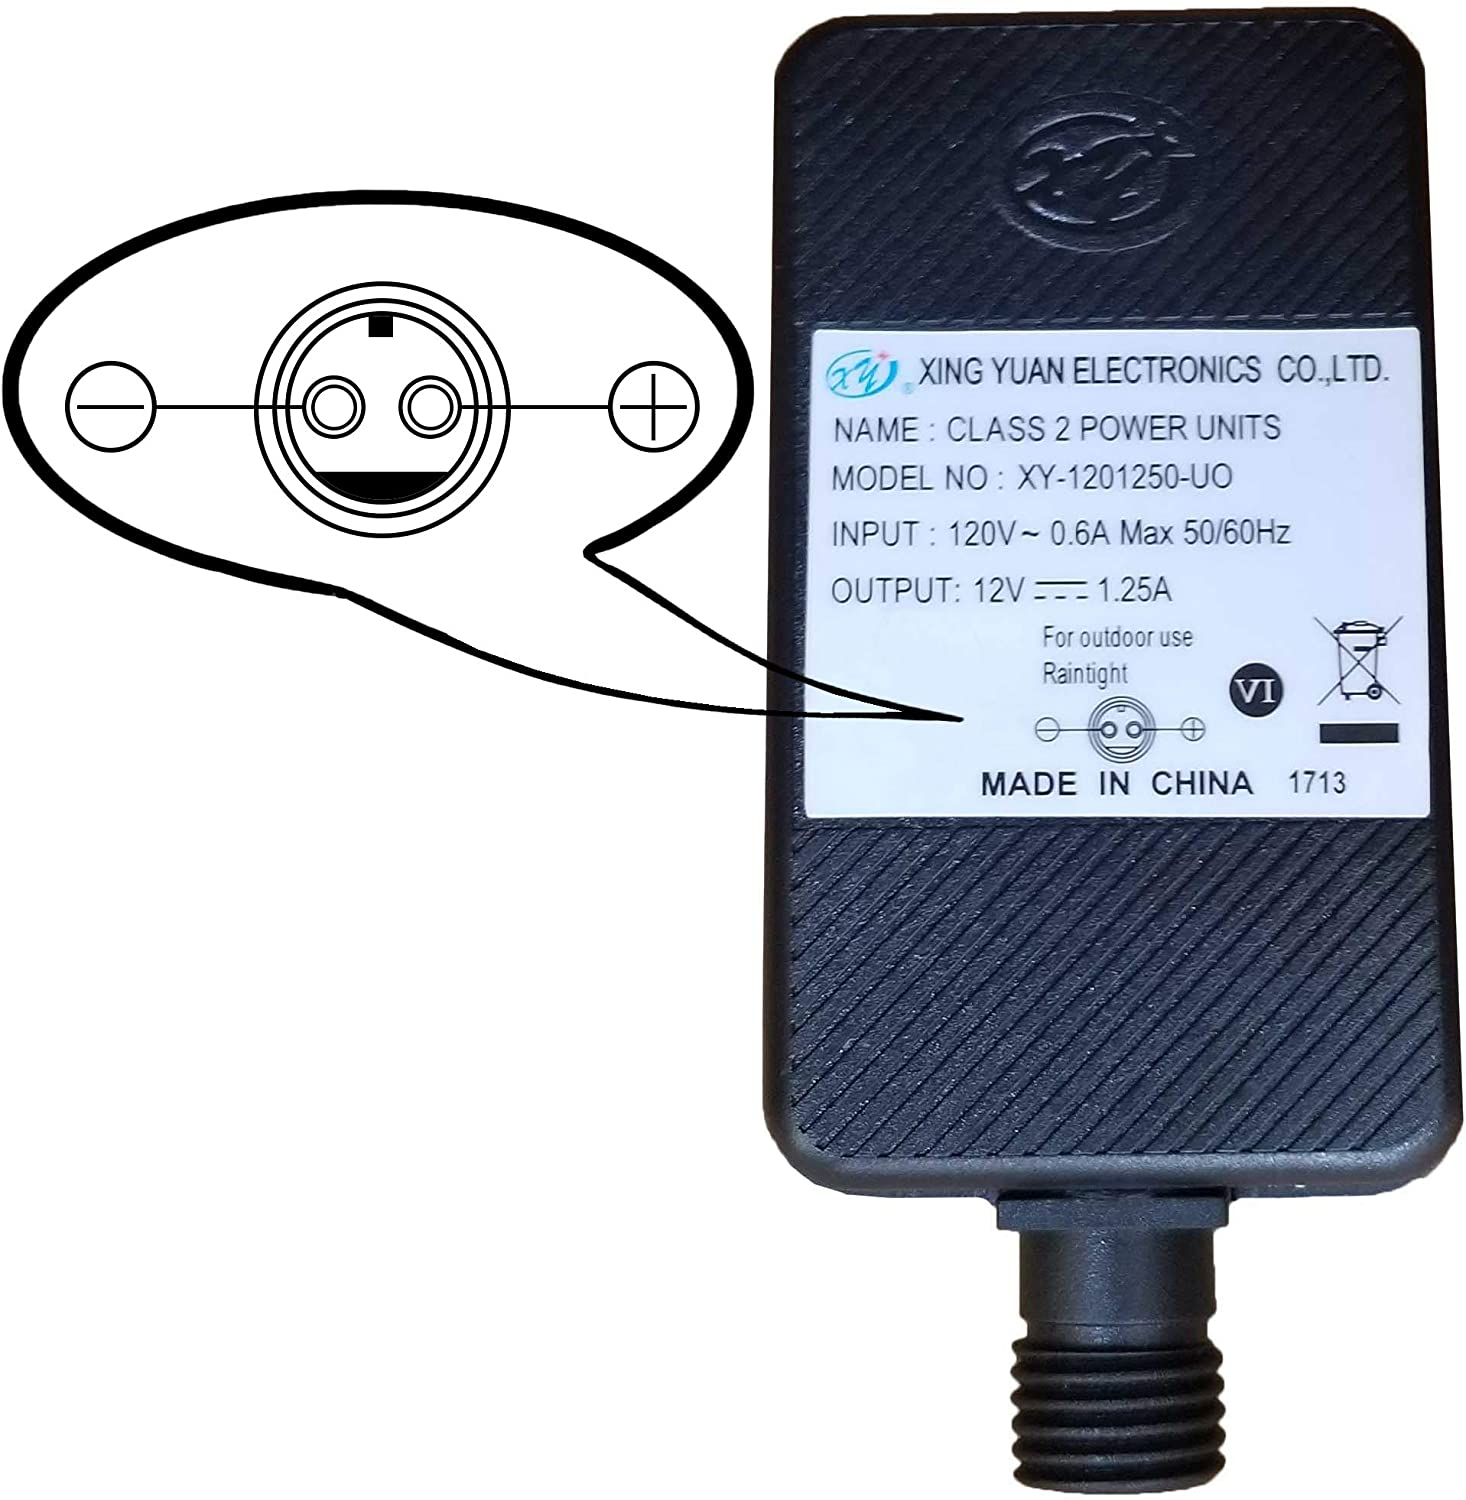 Replacement Yard Inflatable Adapter Power Supply Adaptor 12Vdc 1.25A 1250mA 1.25Amp UL or ETL Listed 12V for Home Lawn Yard Garden Holiday Inflatable Decorations